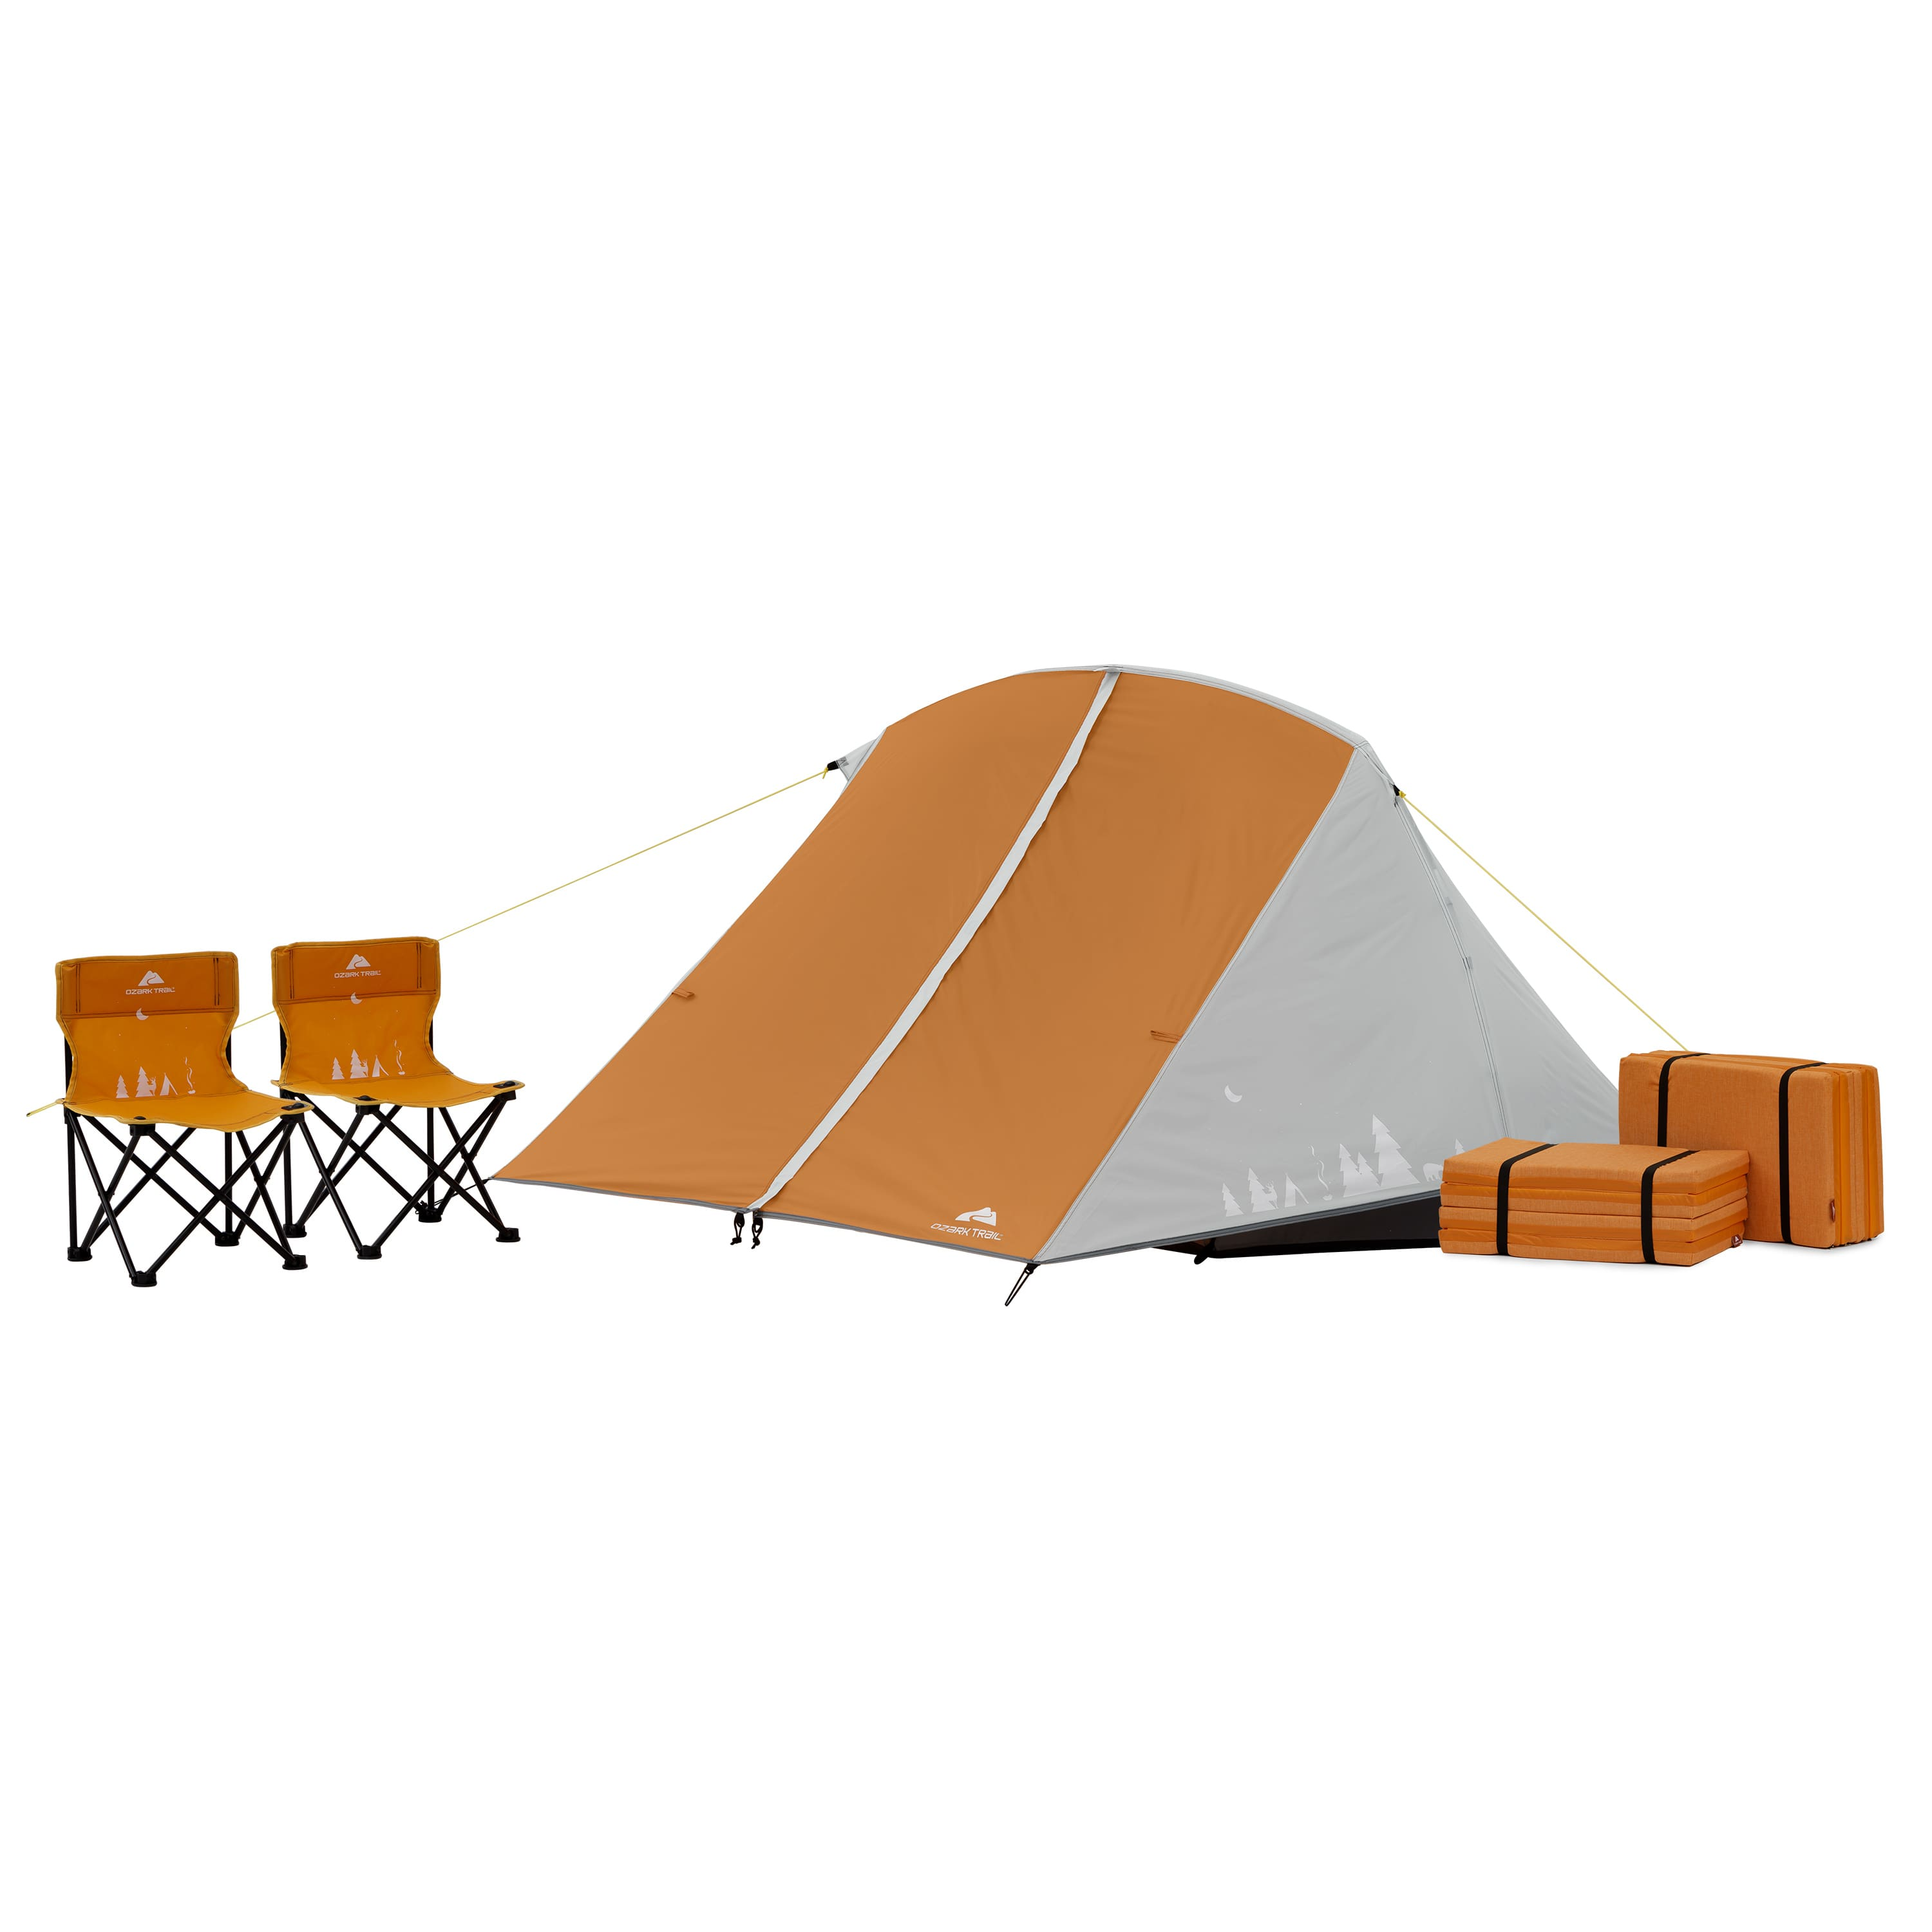 Ozark Trail Kids Camping Kit w/ Tent, Chairs, and Sleeping Pads $39 + Free Shipping